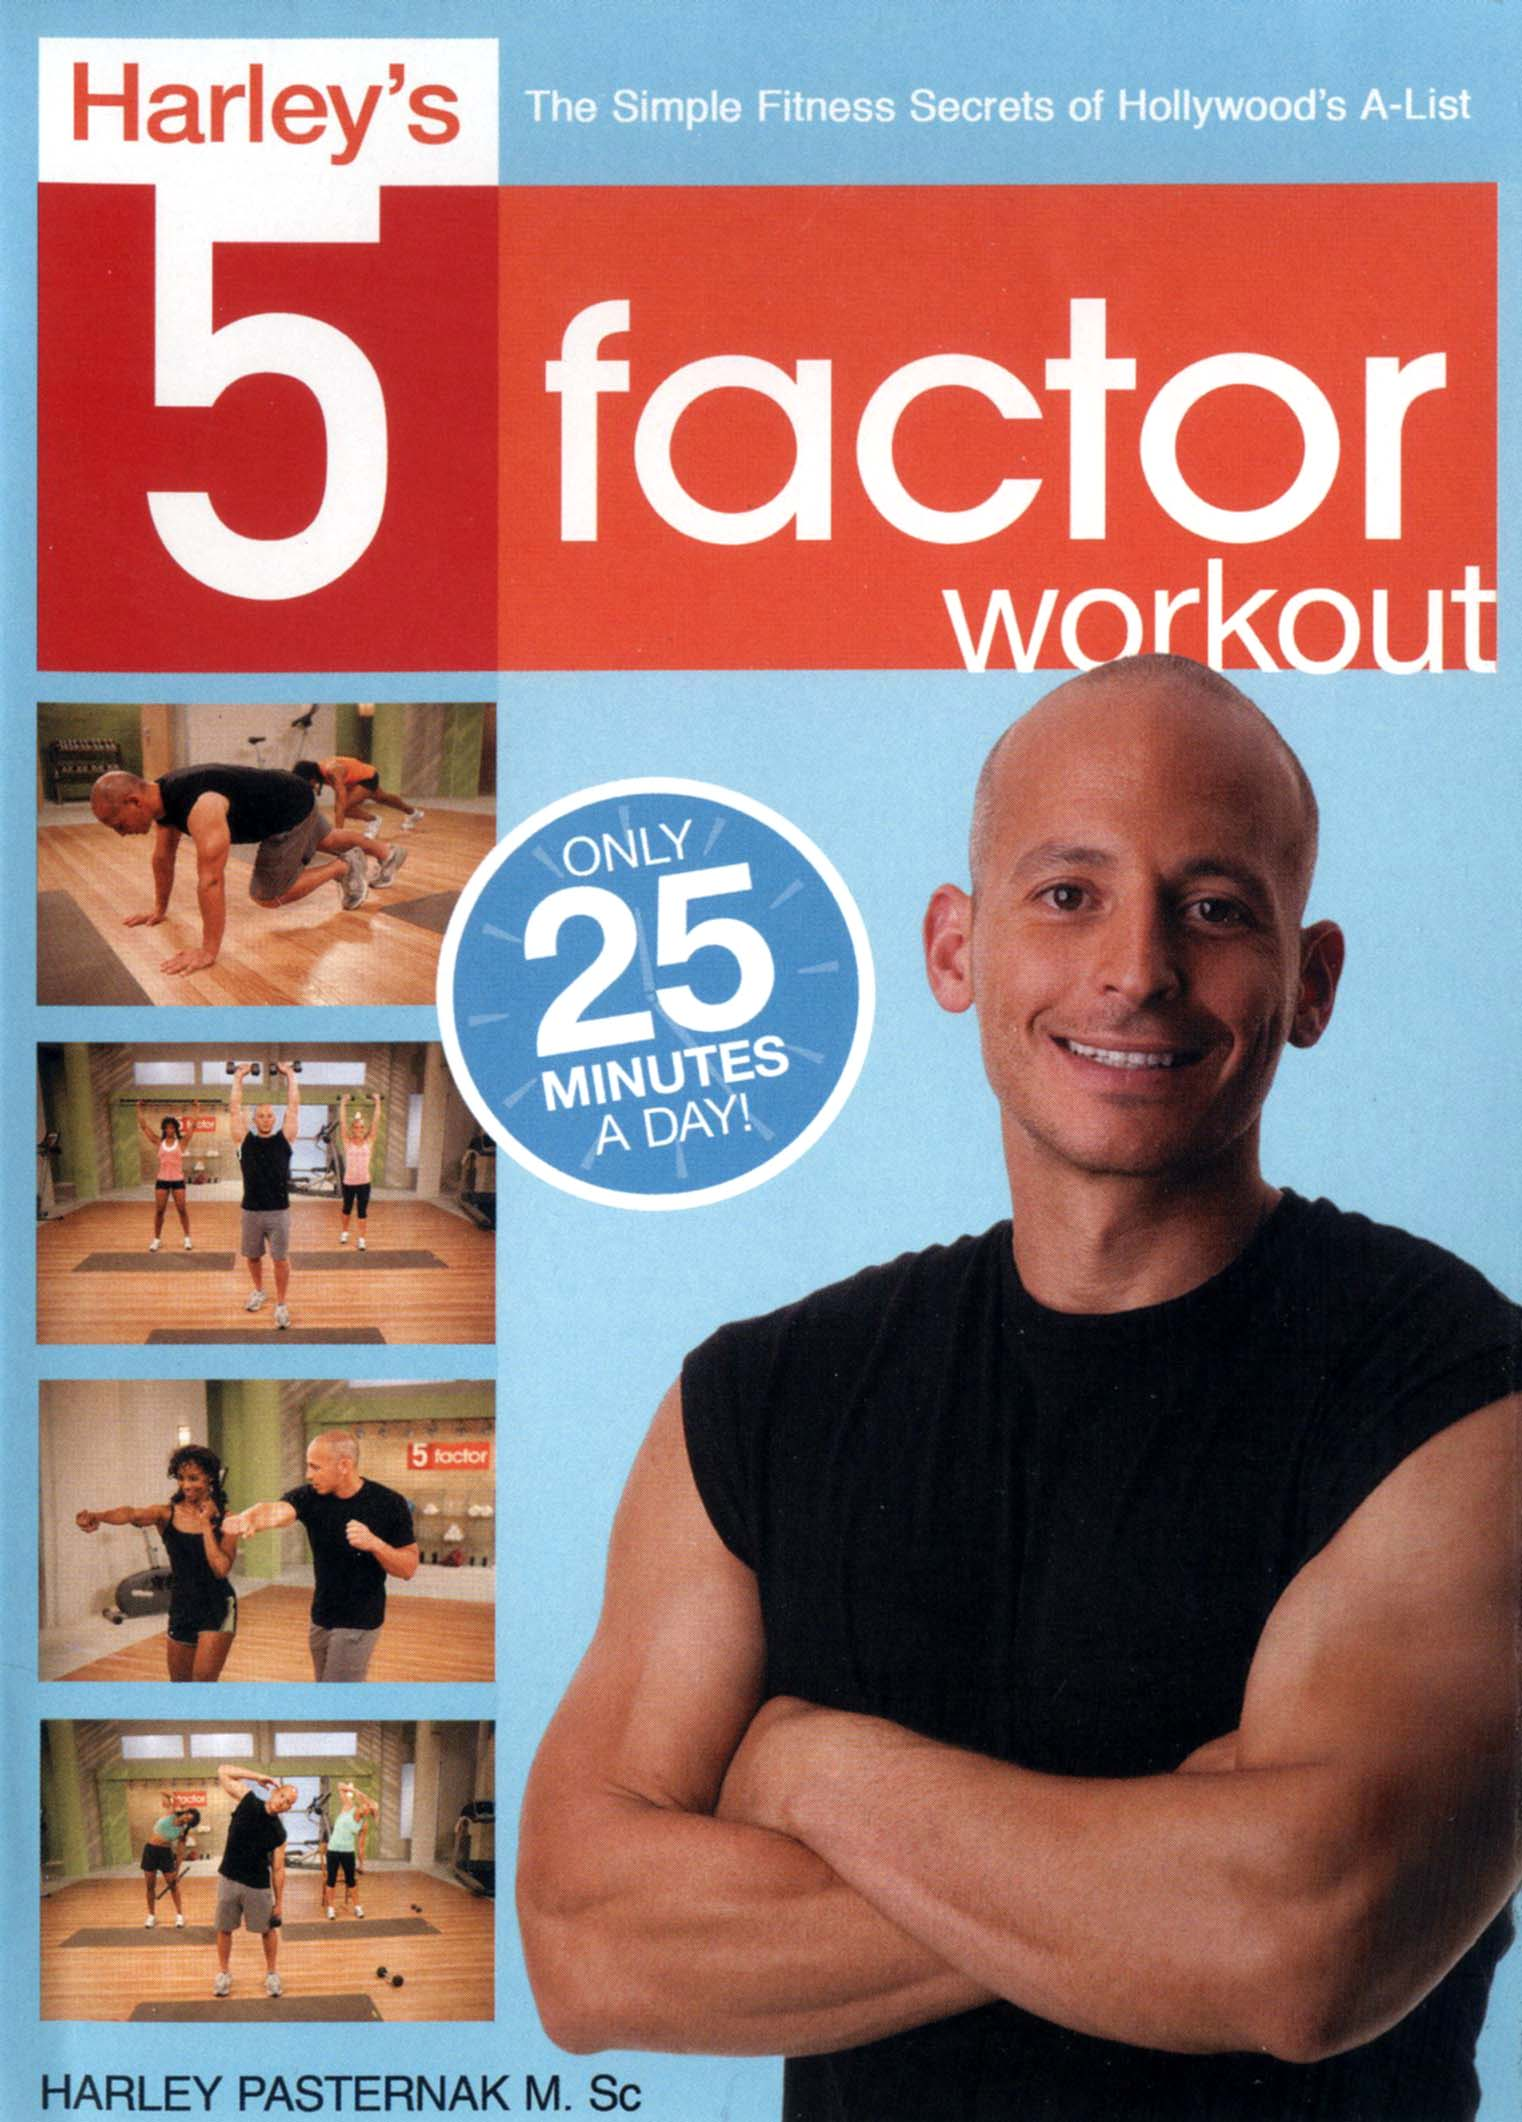 Harley's 5 Factor Workout